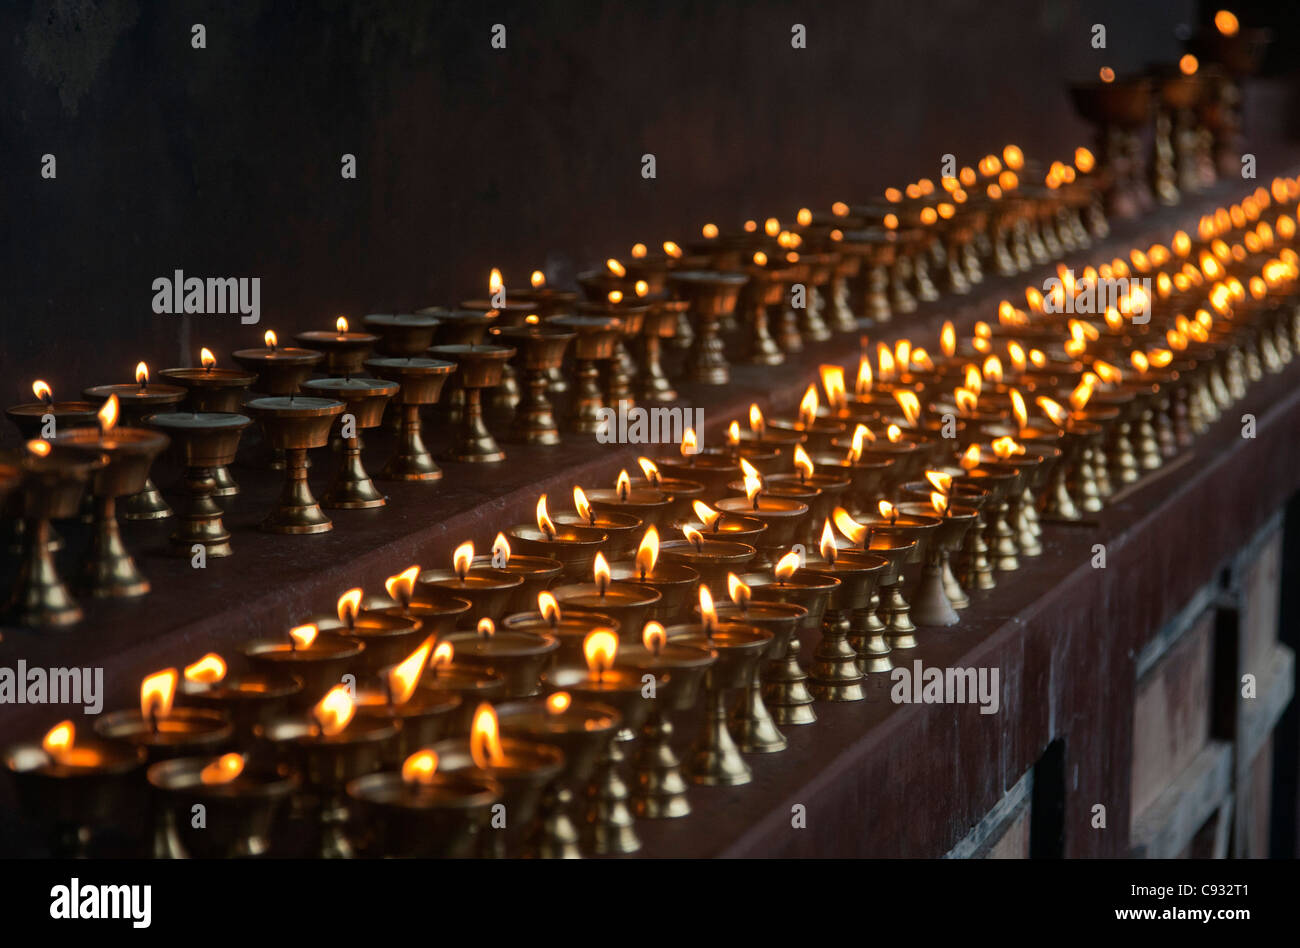 A long line of butter lamps burning at the Changangkha Temple, a fine 15th century temple, on the outskirts of Thimphu. - Stock Image